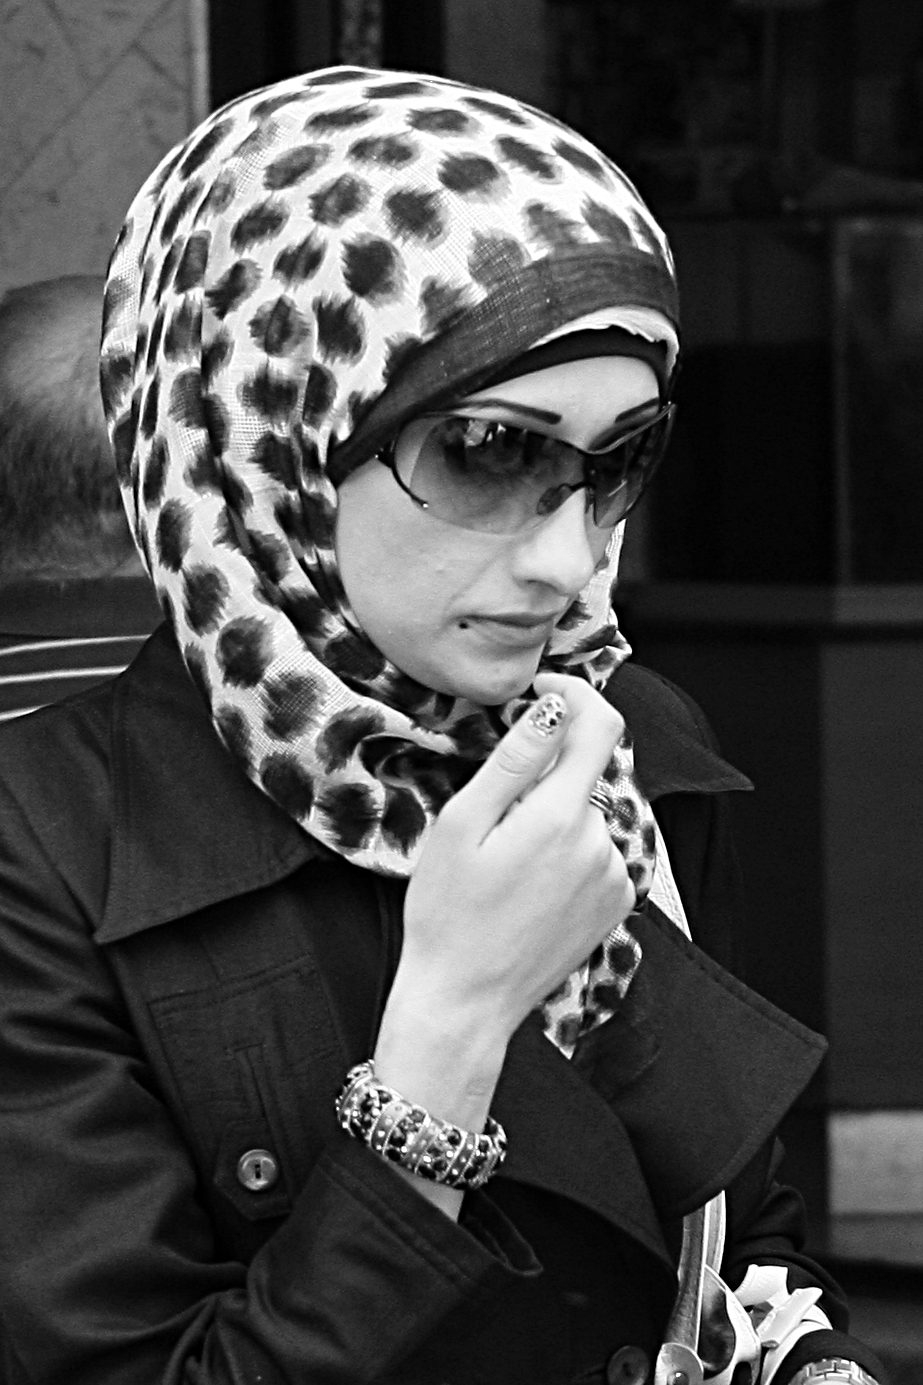 Stylish muslimah in Jerusalem